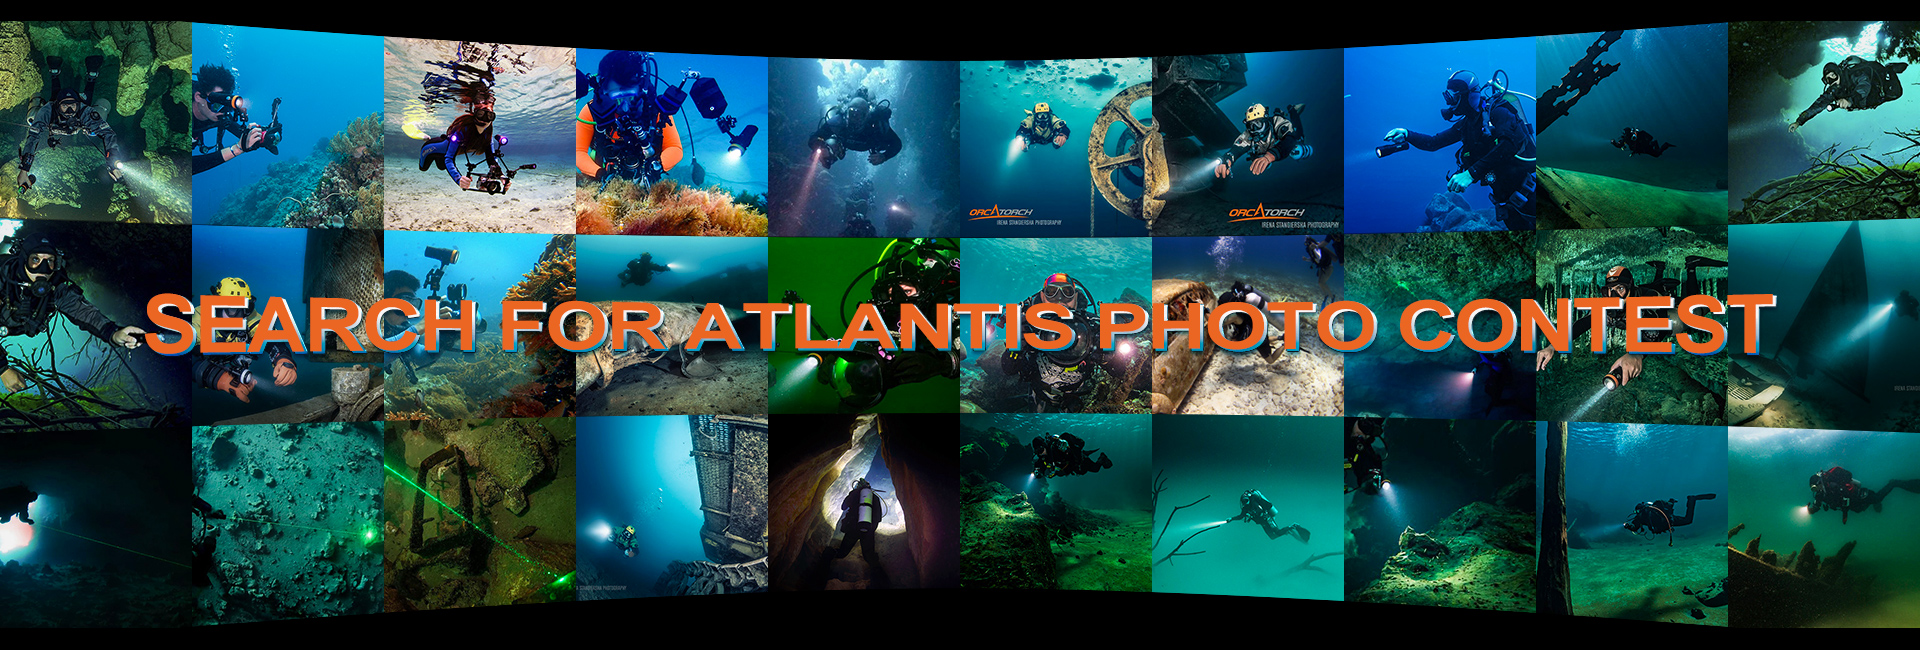 Looking for Atlantis Photo Contest